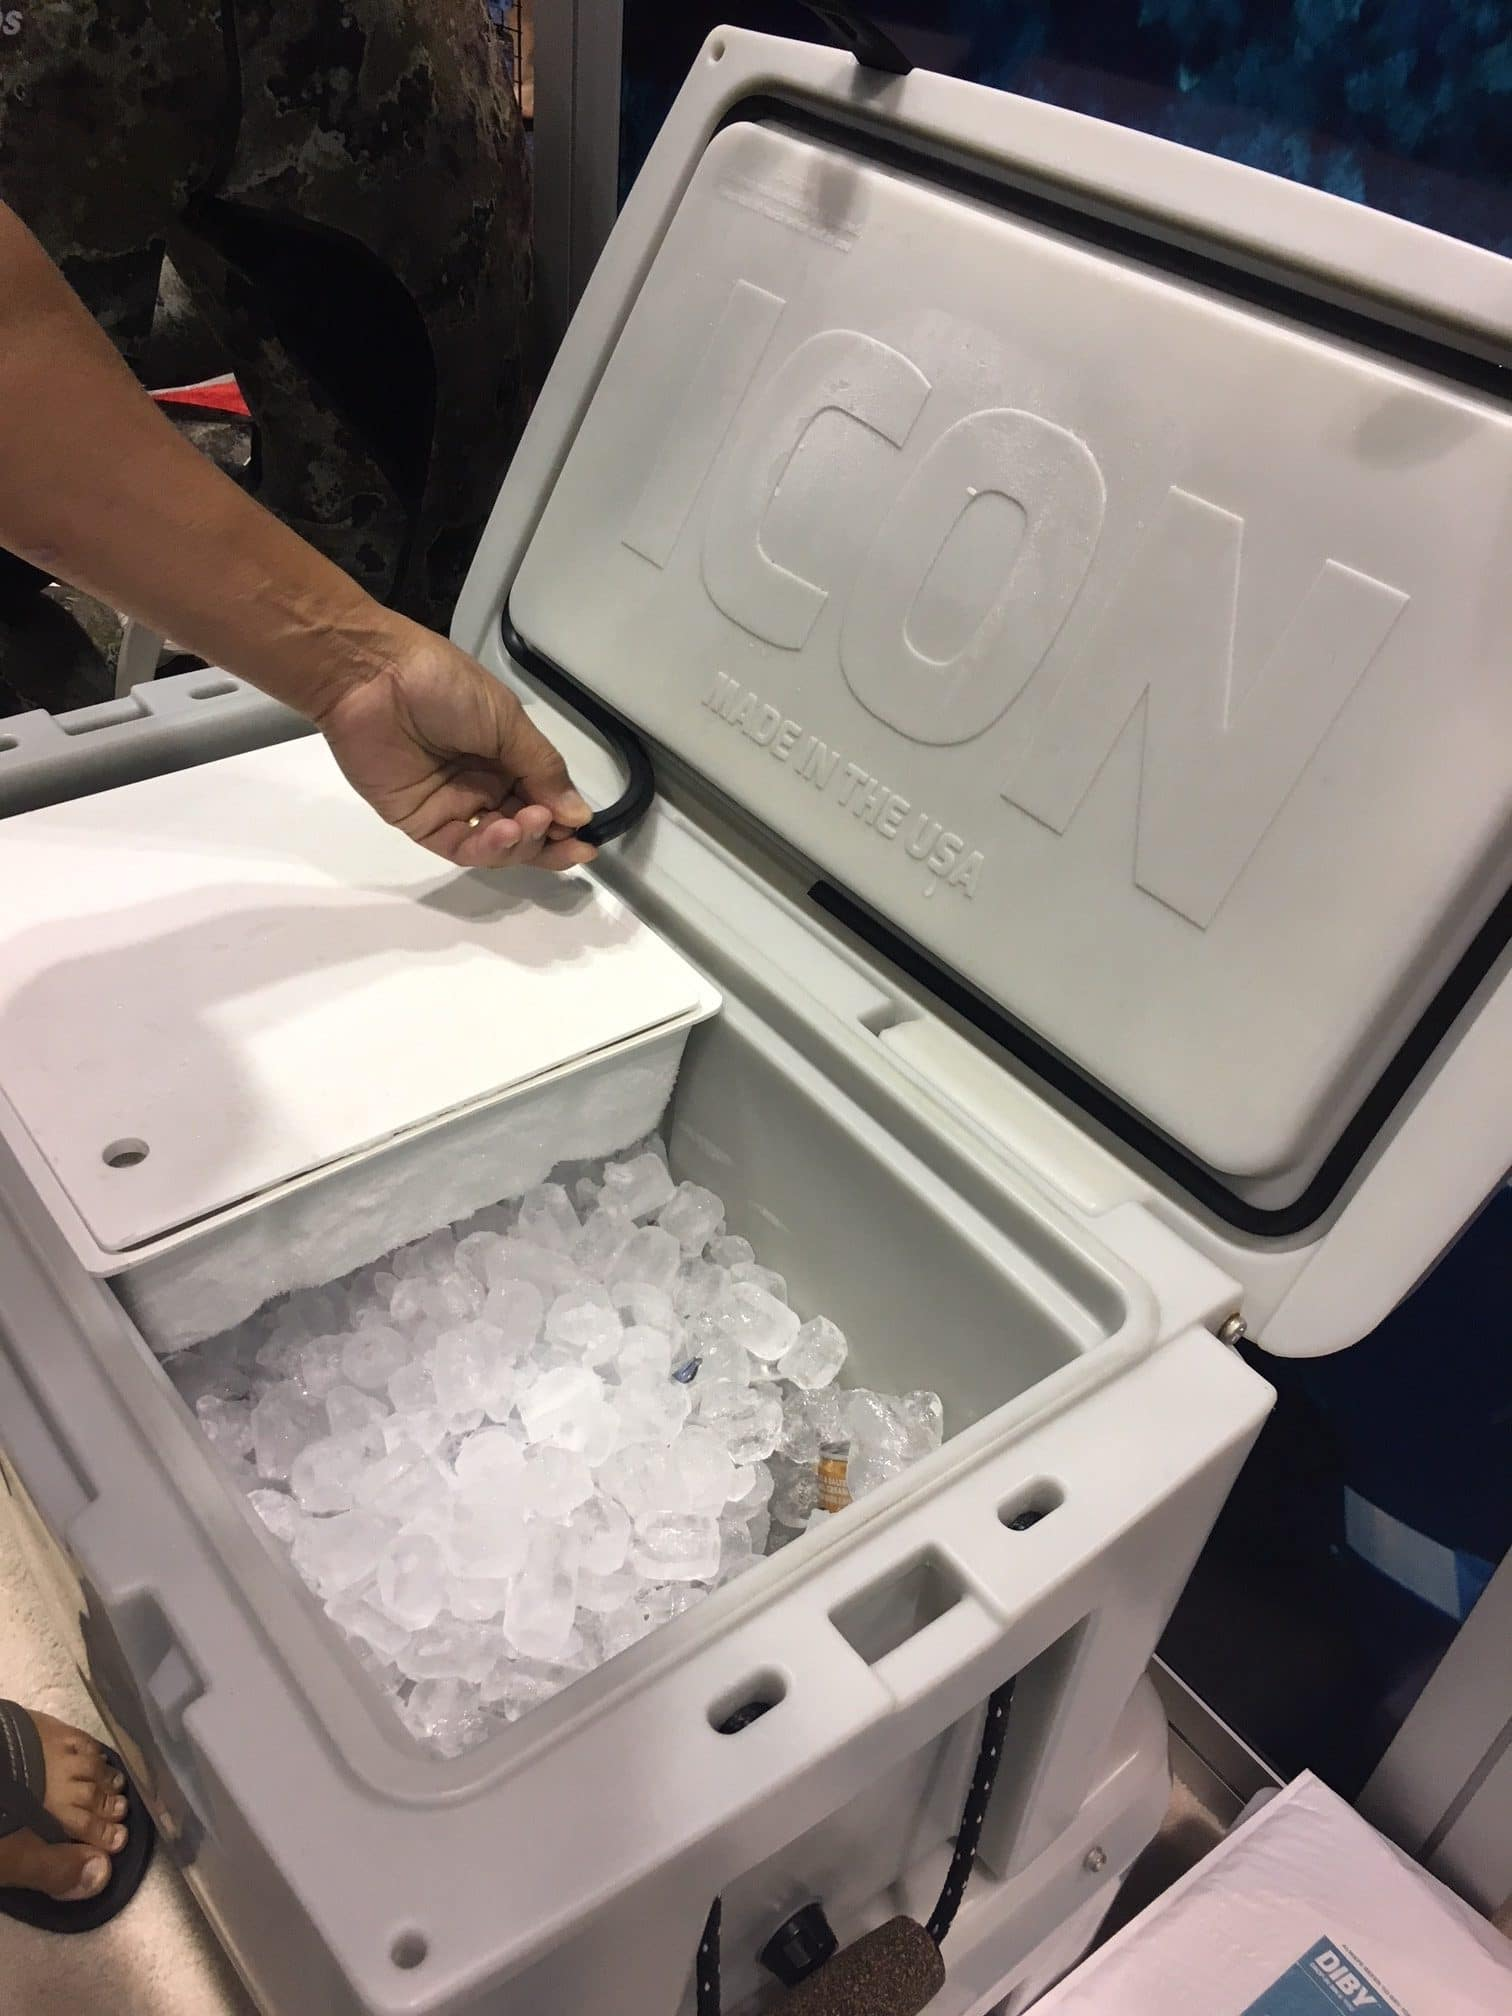 The Icon cooler features a removable gasket seal for easy cleaning and the patented Diby fridge sleeve.